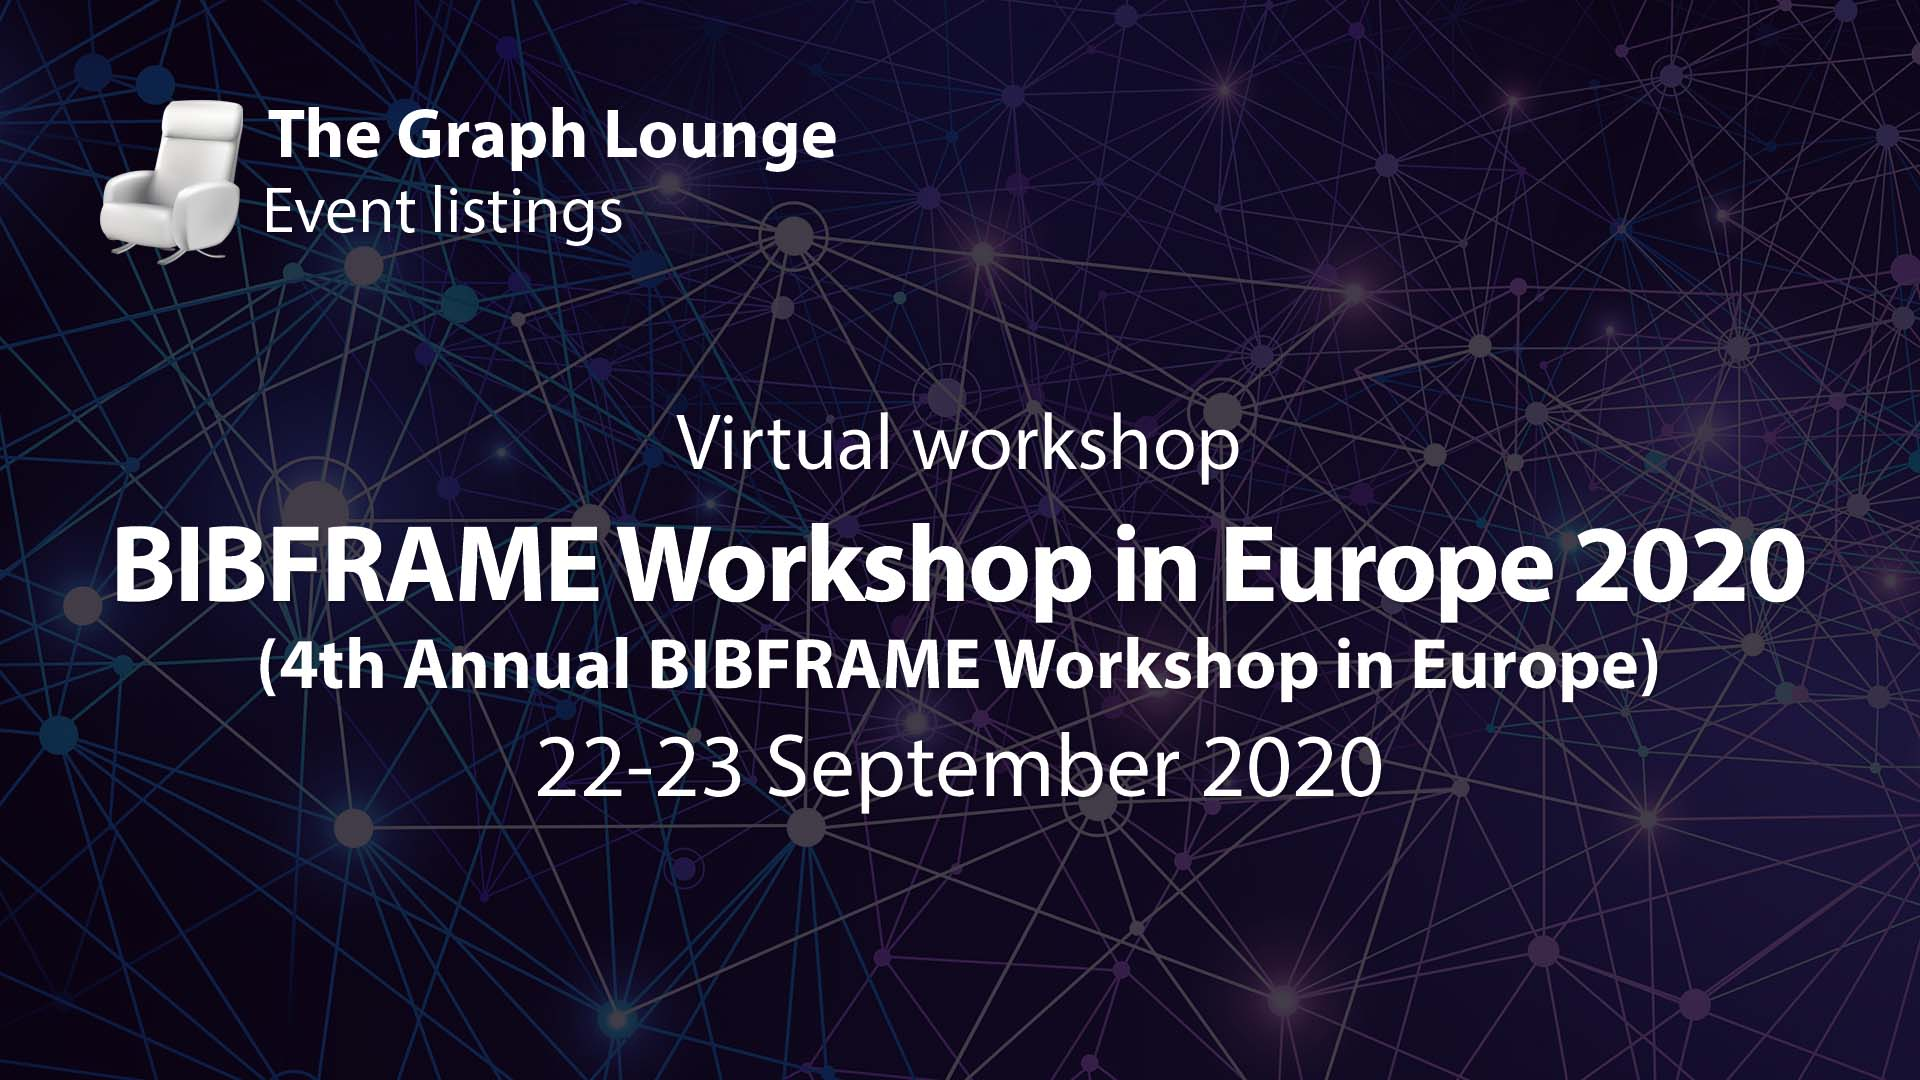 BIBFRAME Workshop in Europe 2020 (4th Annu­al BIBFRAME Works­hop in Euro­pe)